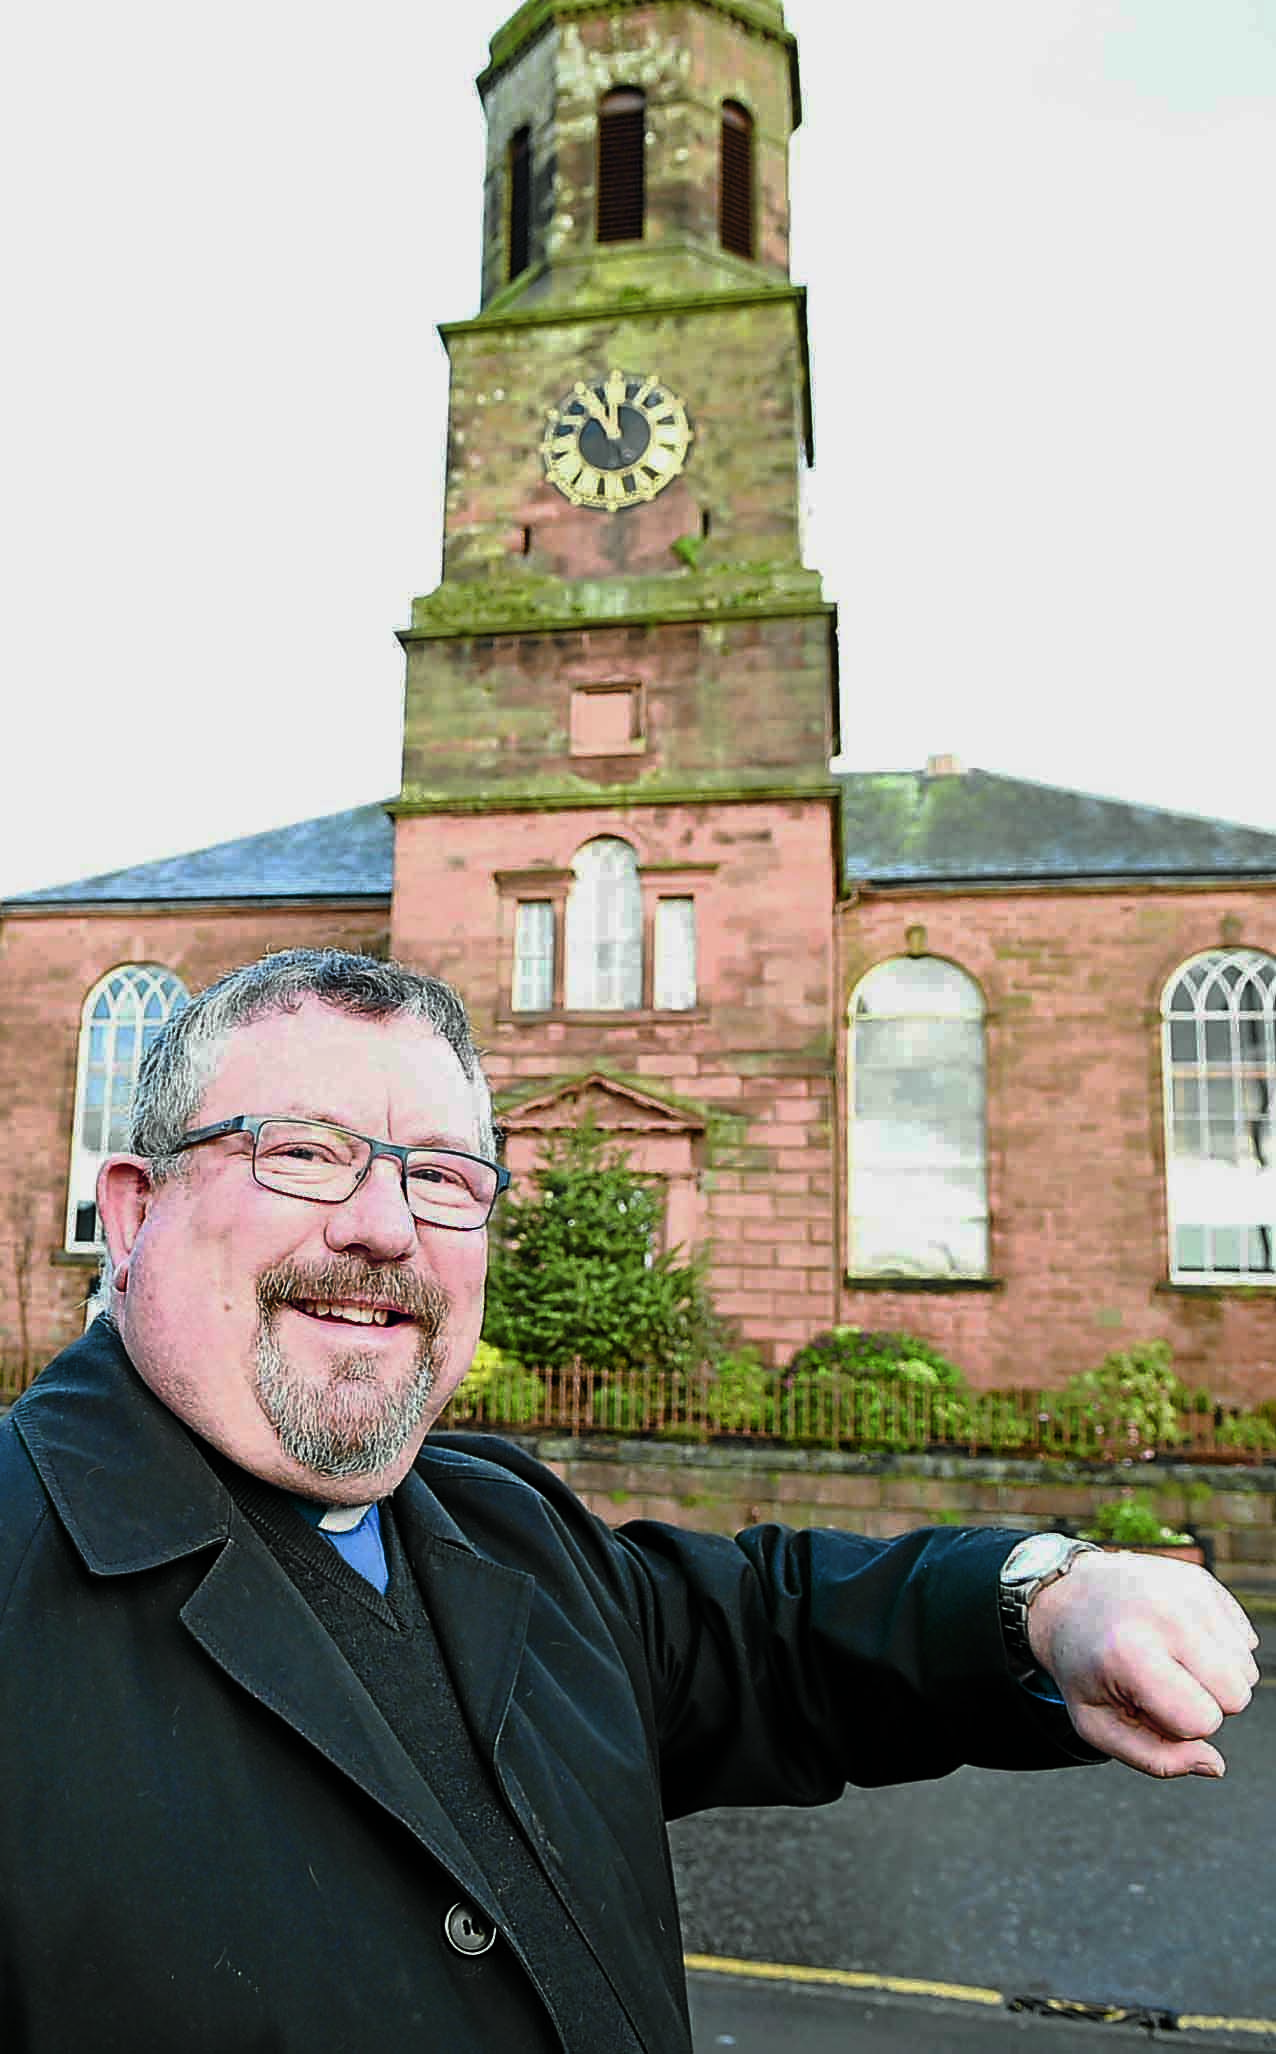 Town clock is ticking again